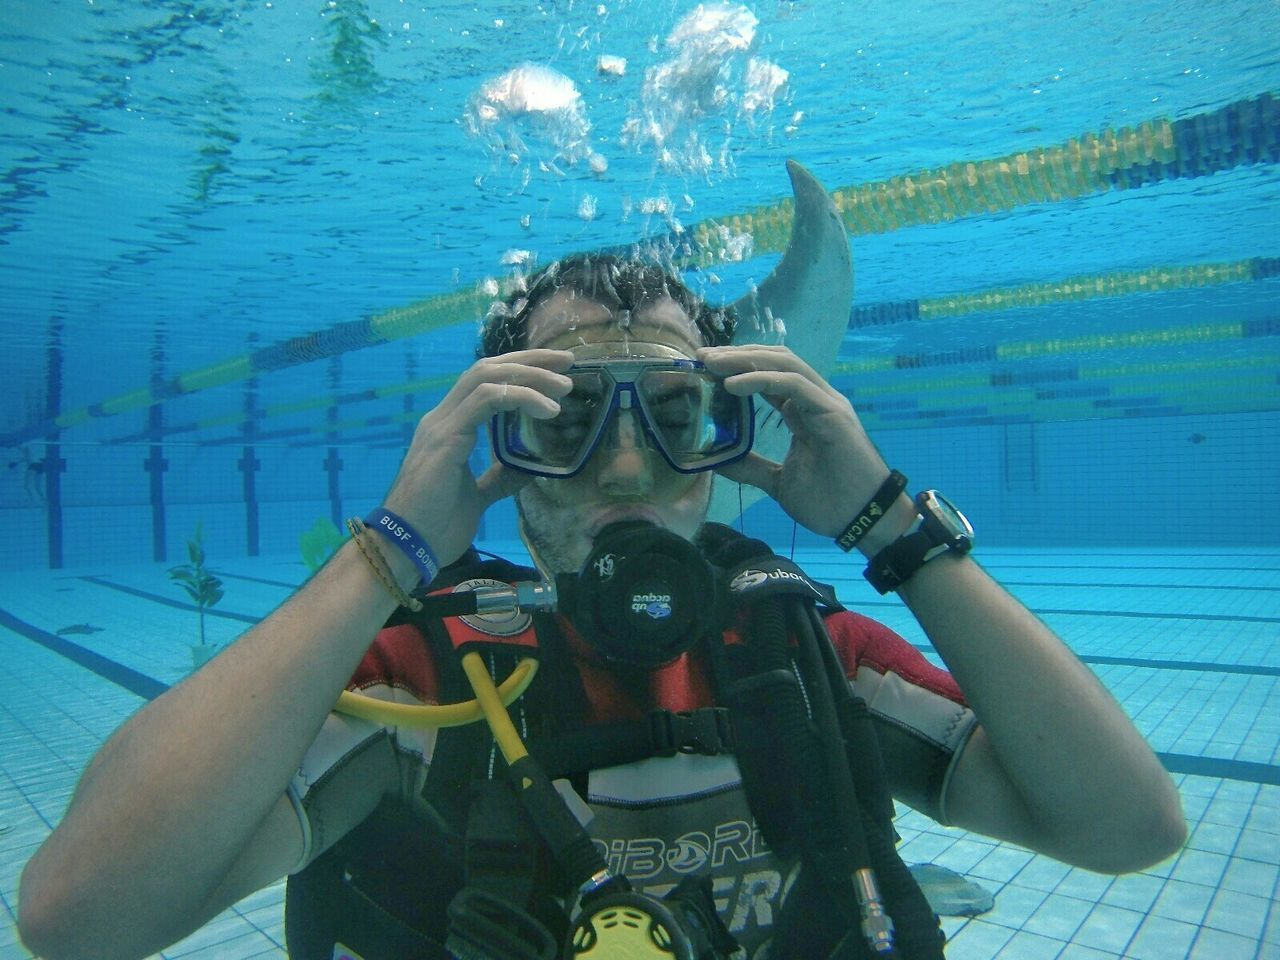 Gopro Scuba Diving Water Water_collection Scubadiving Submarine Scubadive Oxigen Practicing Photography In Motion